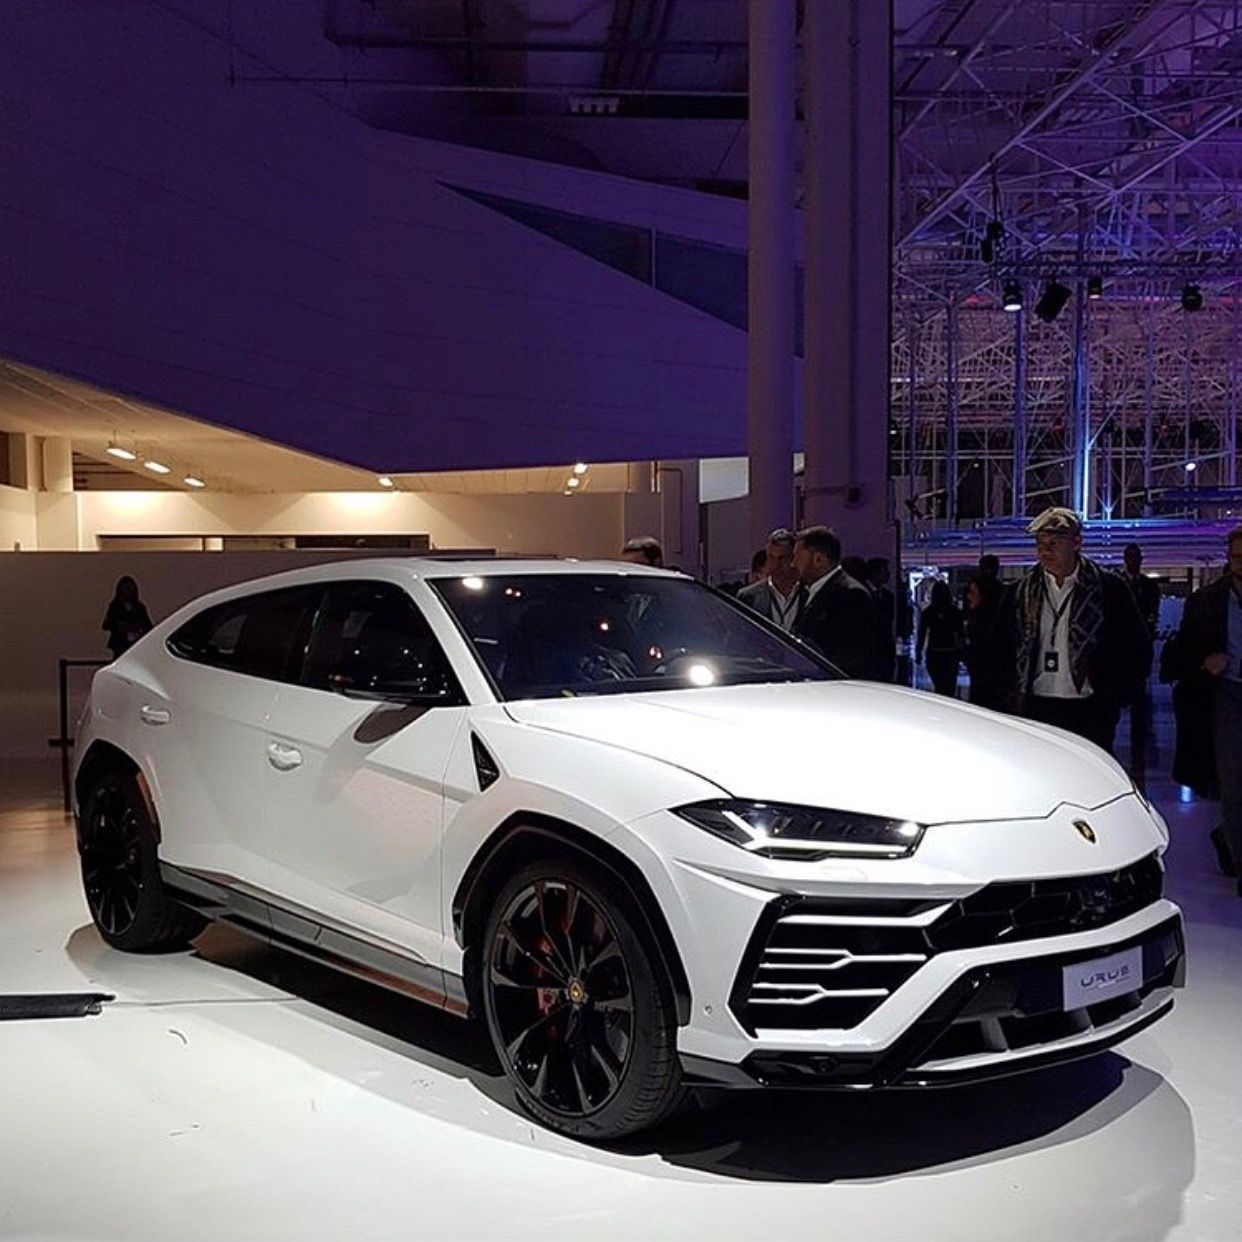 Lamborghini Urus Painted In Bianco Monocerus Photo Taken